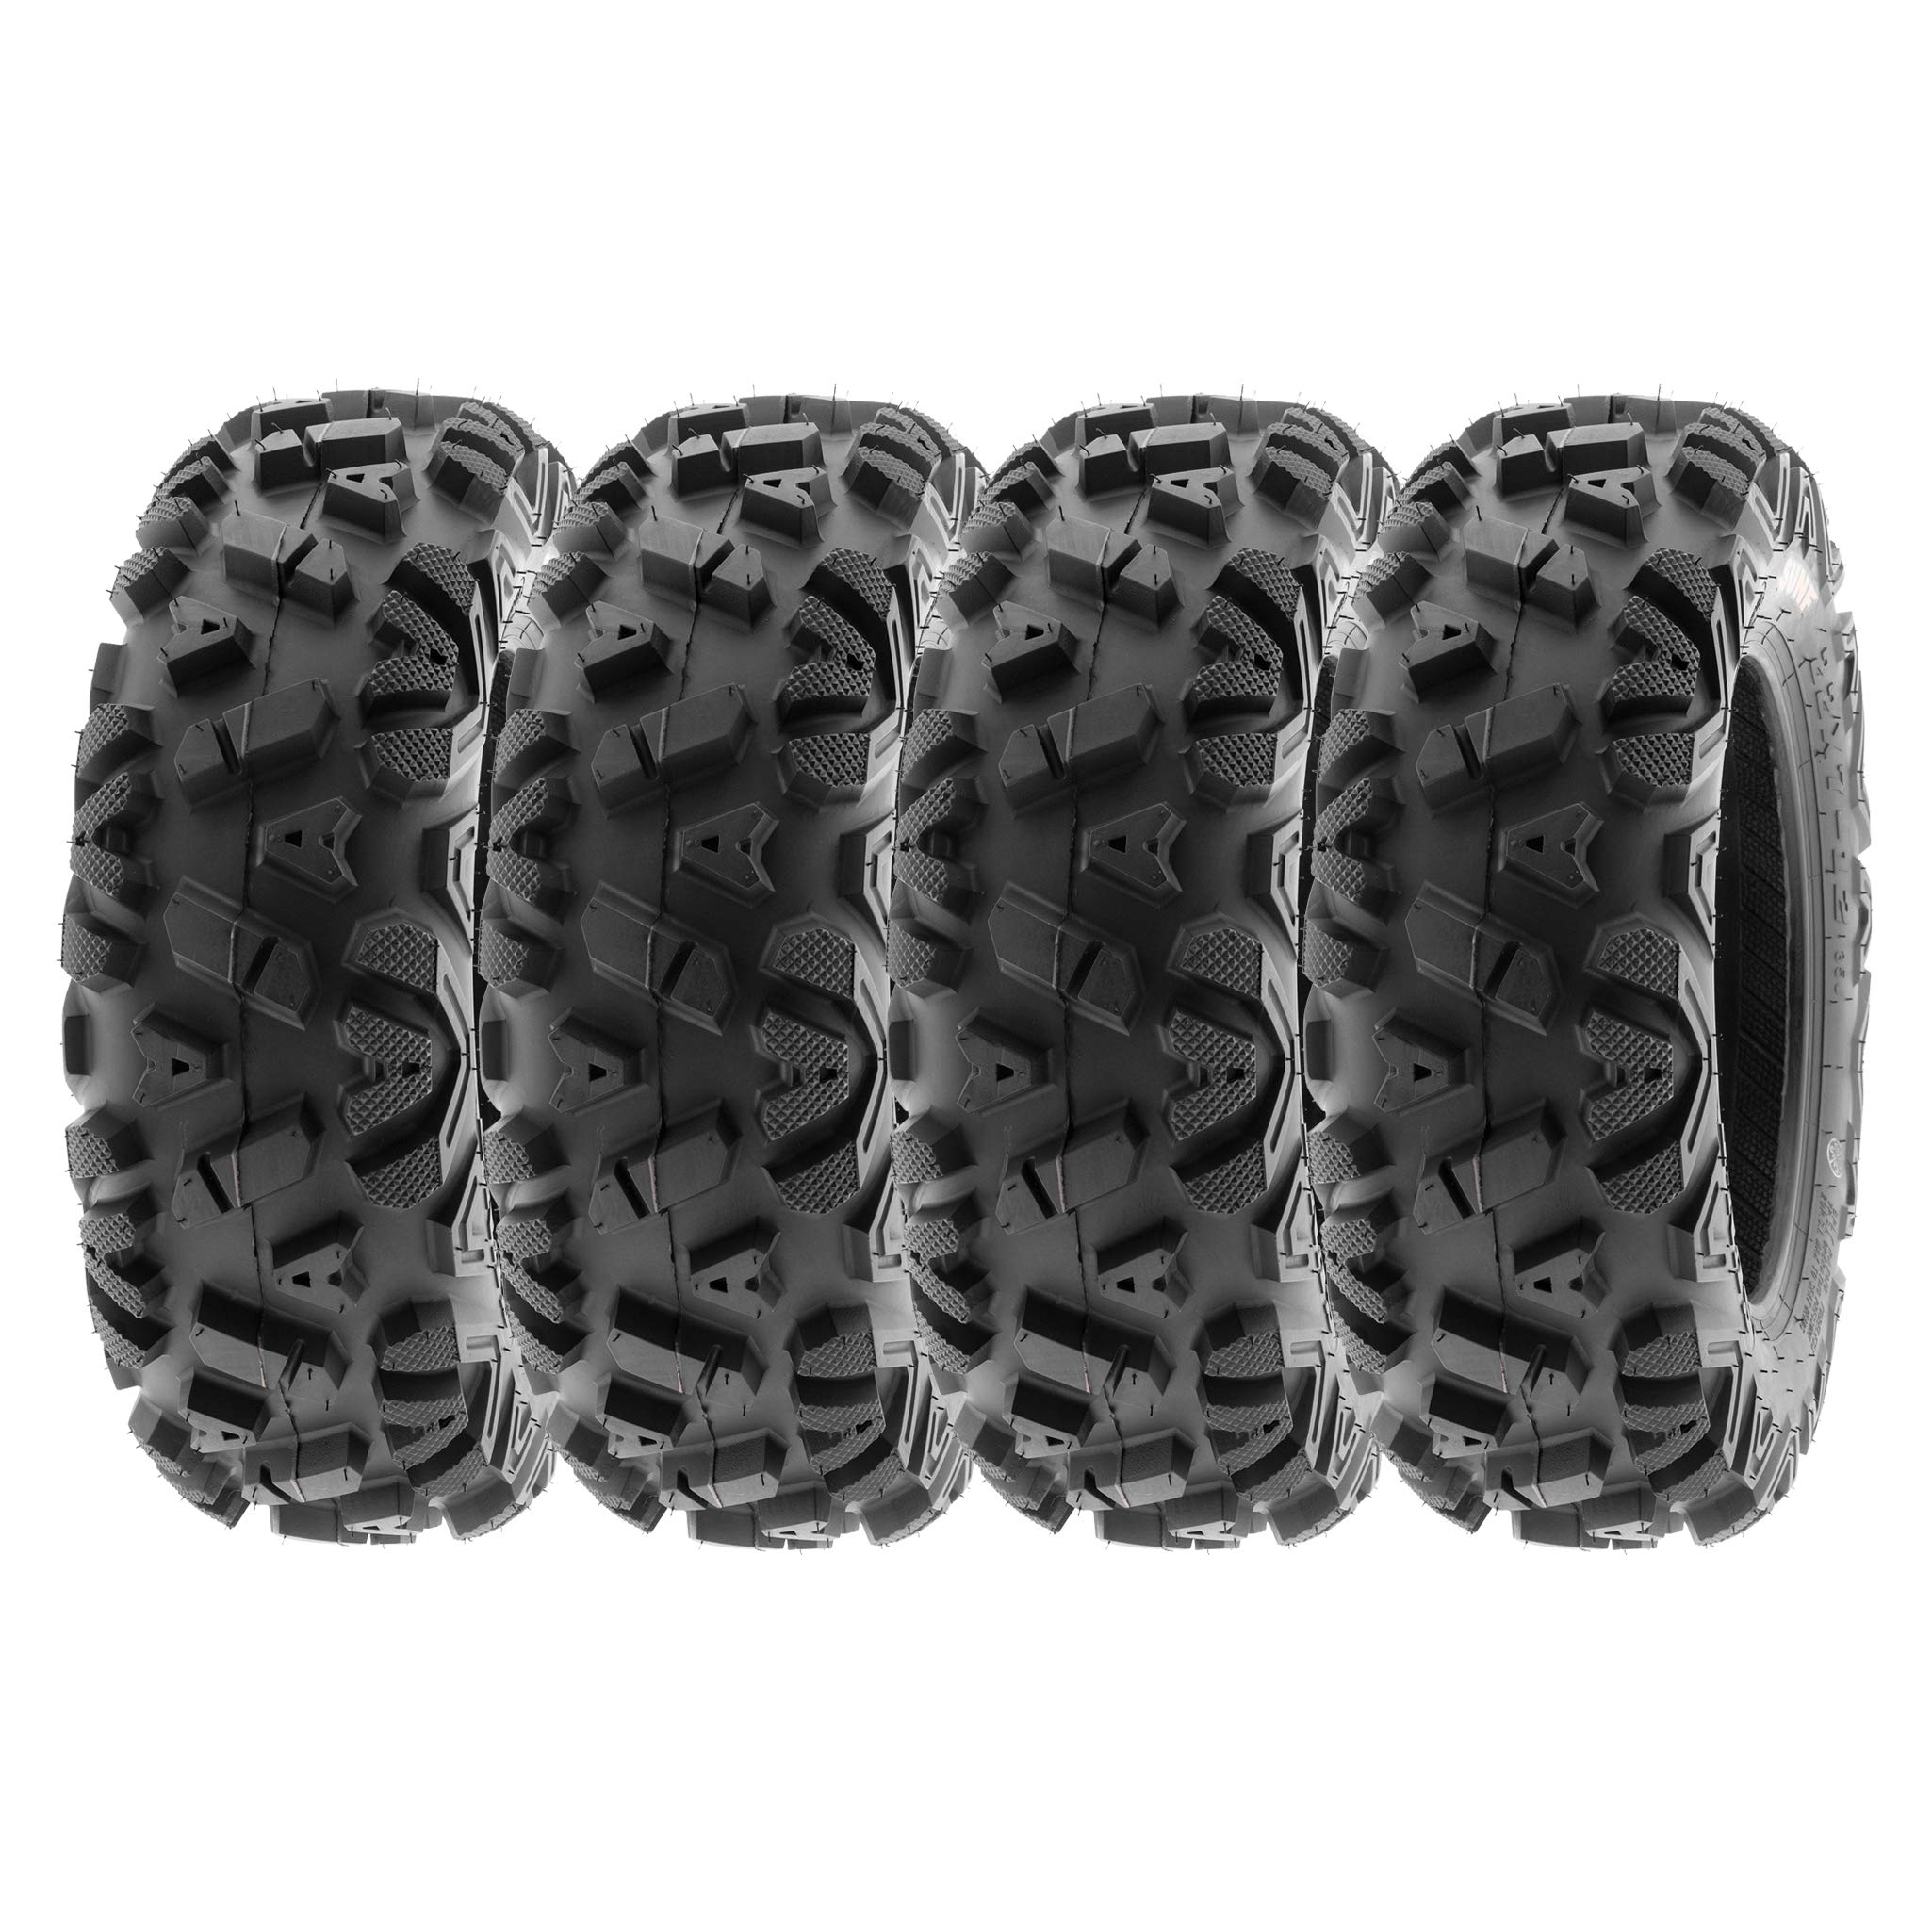 SunF ALL TERRAIN ATV UTV 6 Ply Race Tires 22x7-12 22x7x12 Tubeless A033 POWER I, [Set of 4]